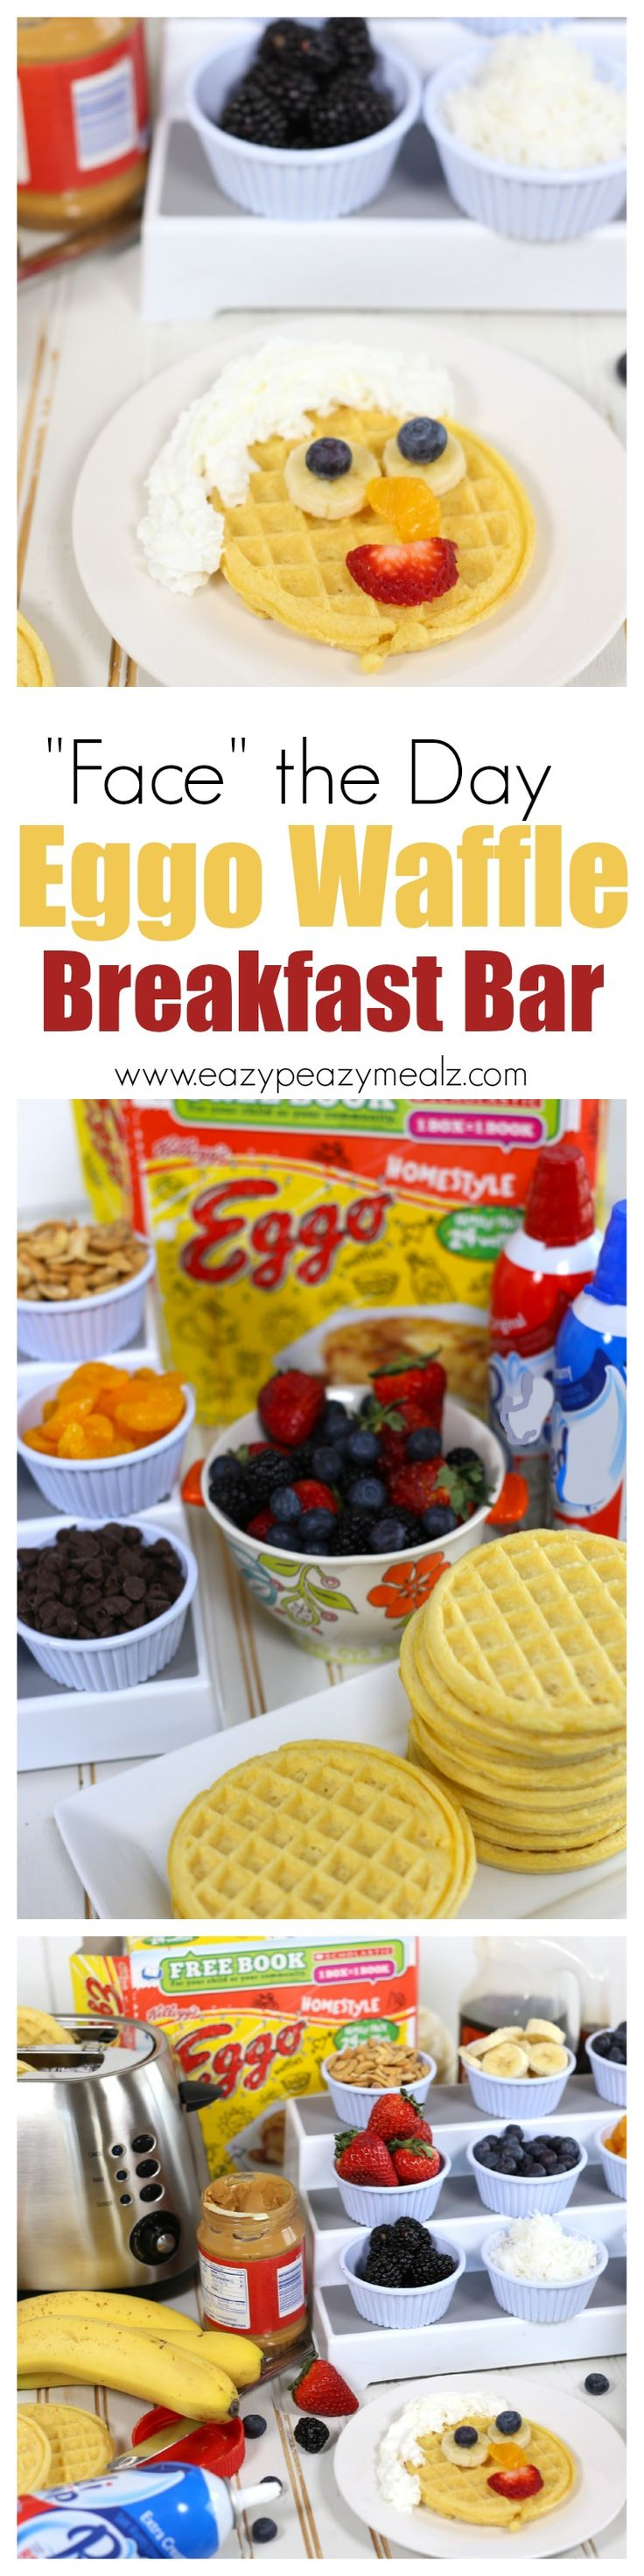 Make facing the day easier and tastier with an Eggo Waffle Bar! Simple, fun, and a great way to add fruits, nuts, and seeds to your kid's diet! #ad #EggoWaffleBar @Walmart - Eazy Peazy Mealz